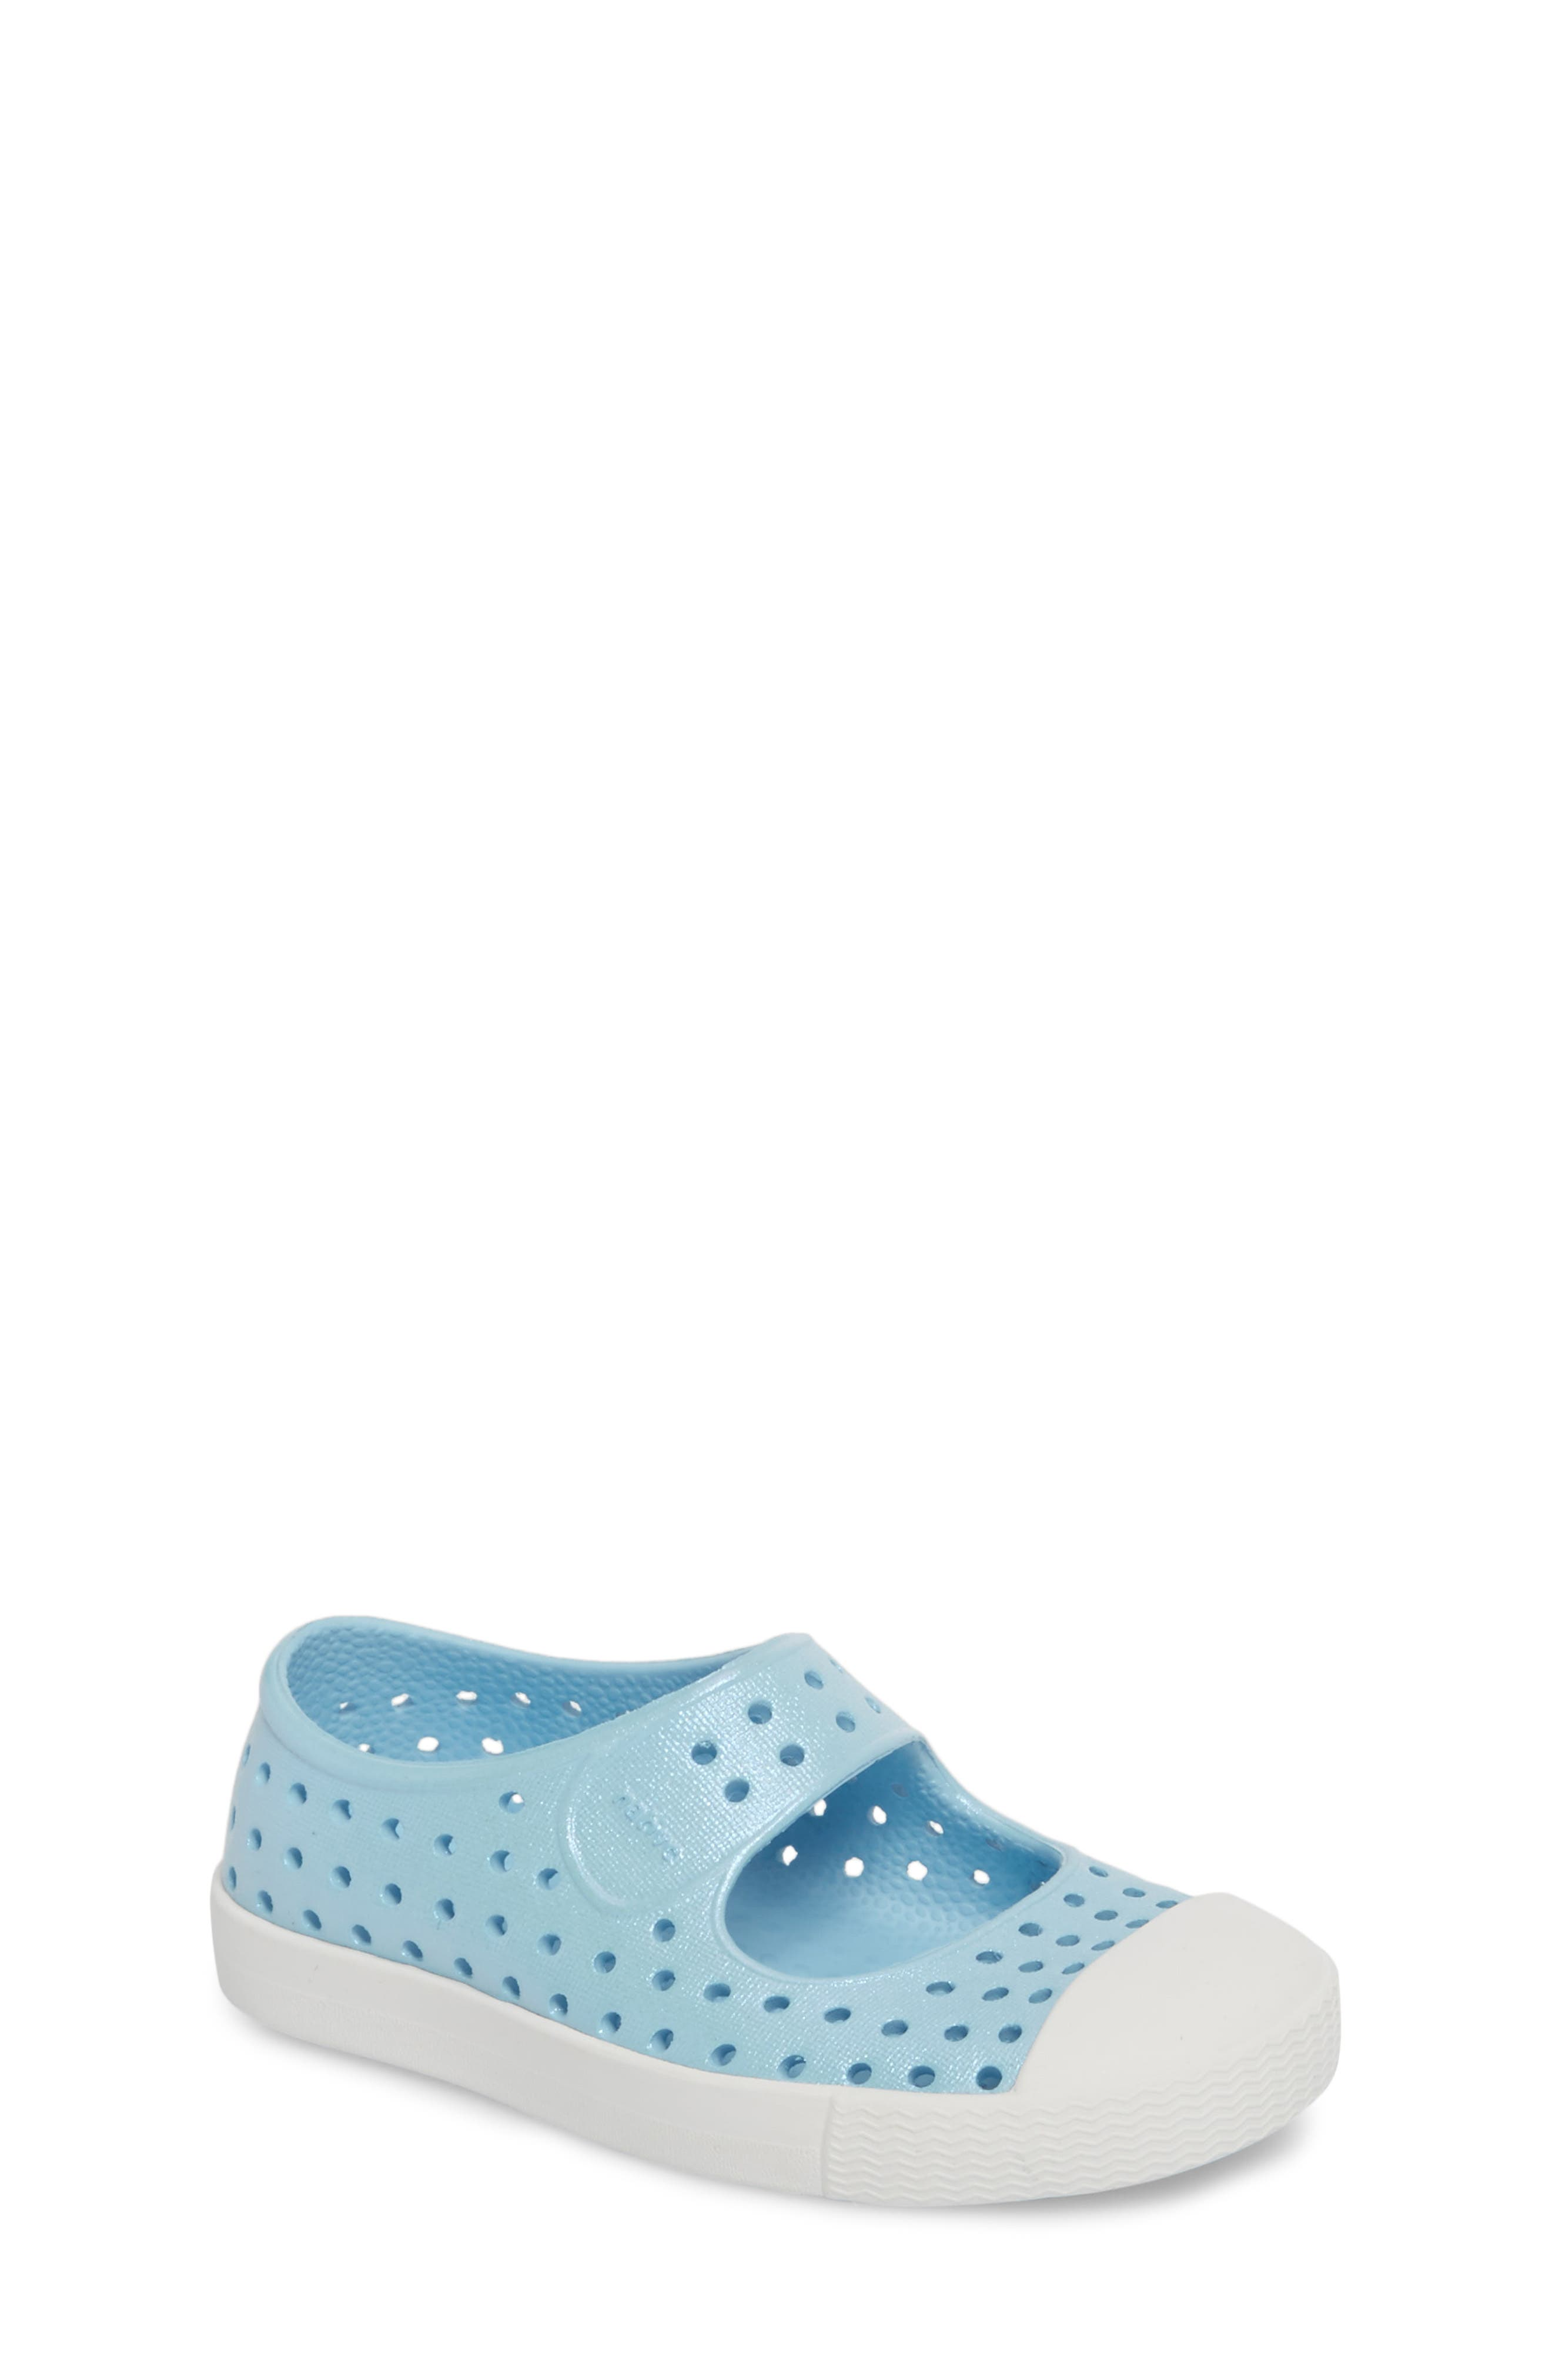 Juniper Perforated Mary Jane,                         Main,                         color, Sky Blue/ White/ Galaxy